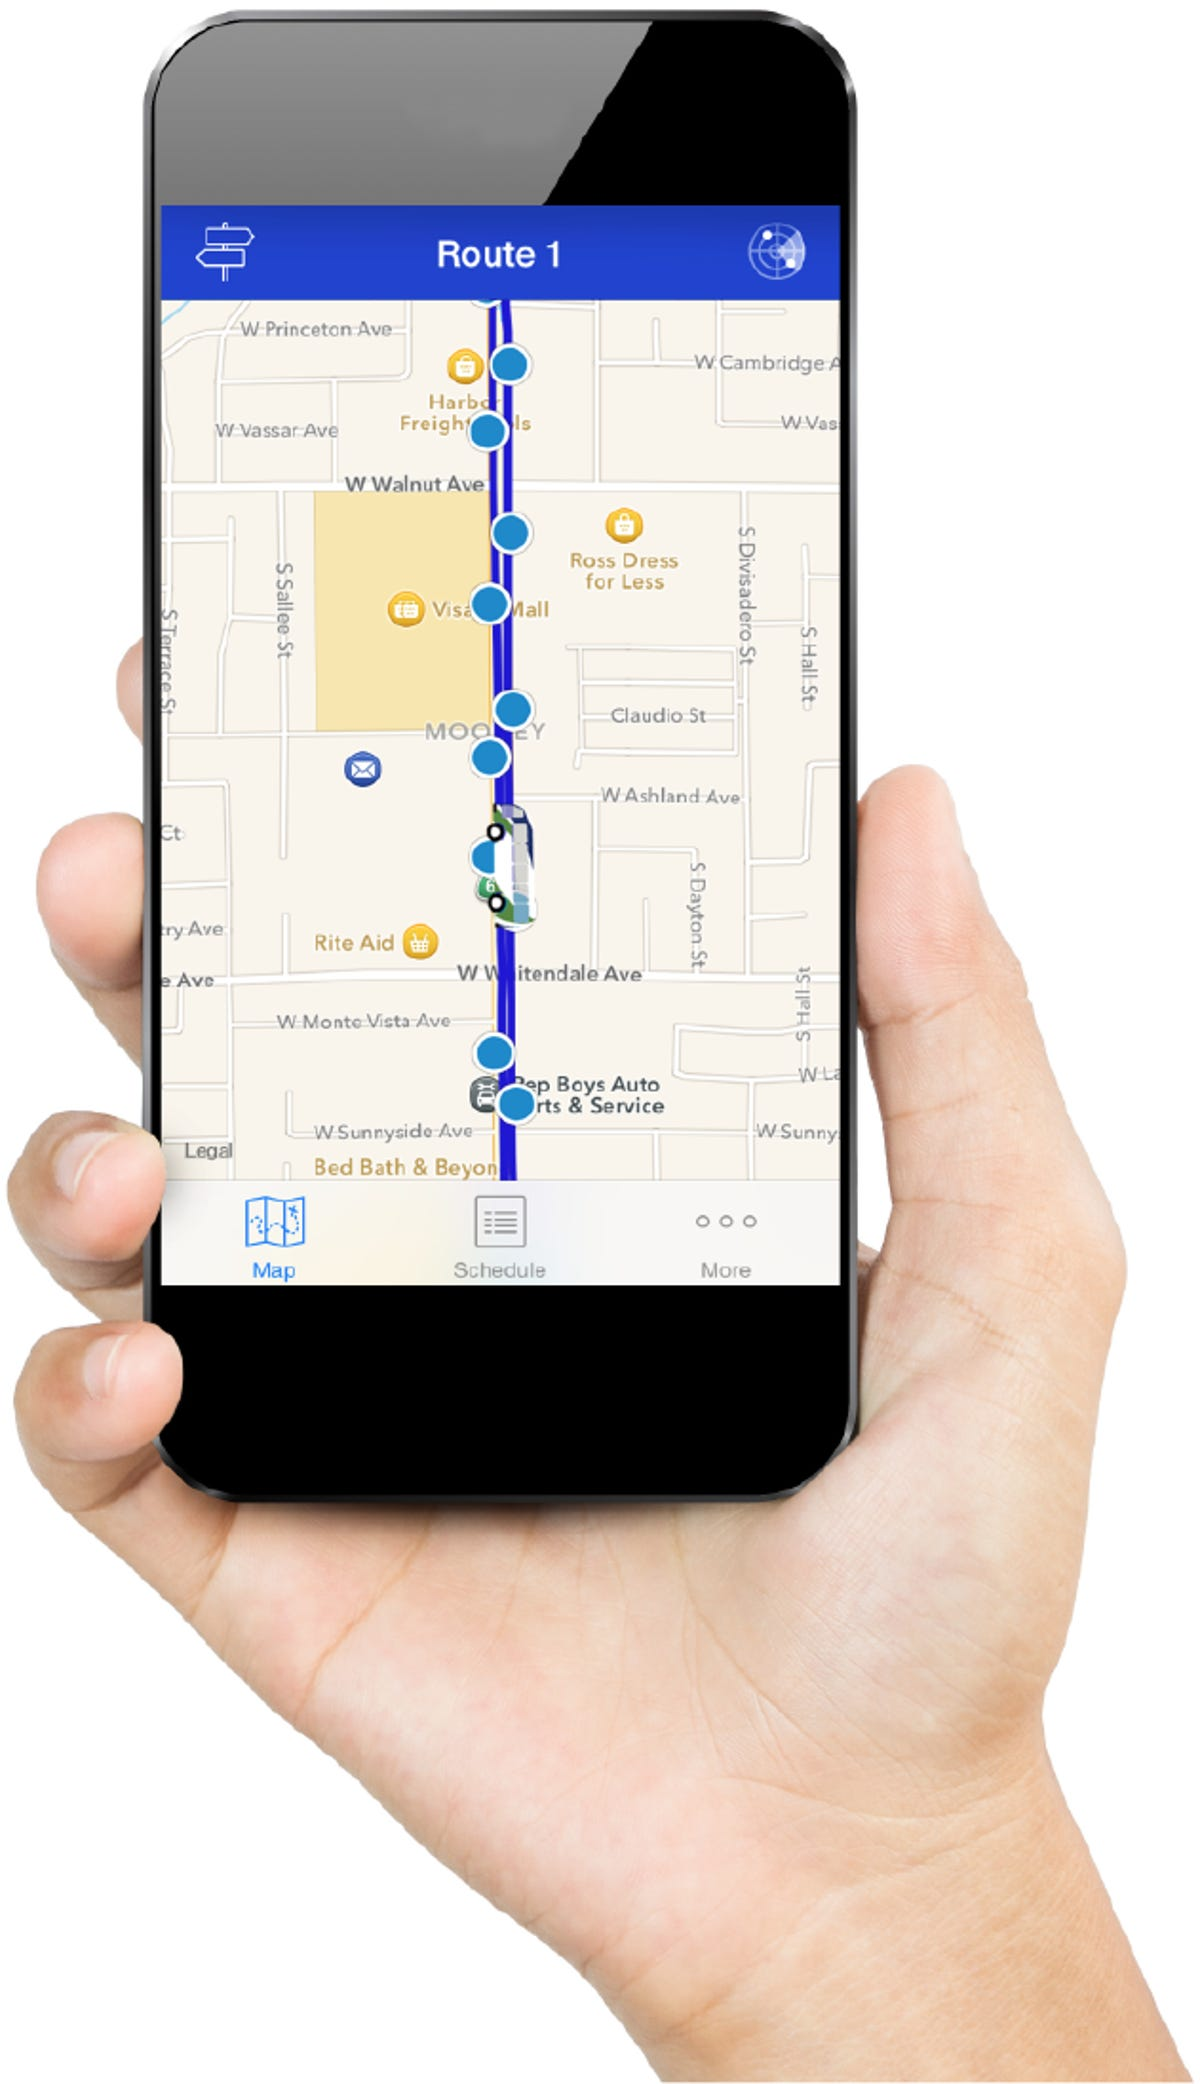 Visalia Transit launches first transit app on greyhound locations by state, new jersey transit map, rail map, amtrak map, adirondack trailways map, nj transit map, eurostar map, greyhound routes, shinkansen map, caltrain map, tgv map, megabus map, stagecoach map, roadtrip map, lrt map,